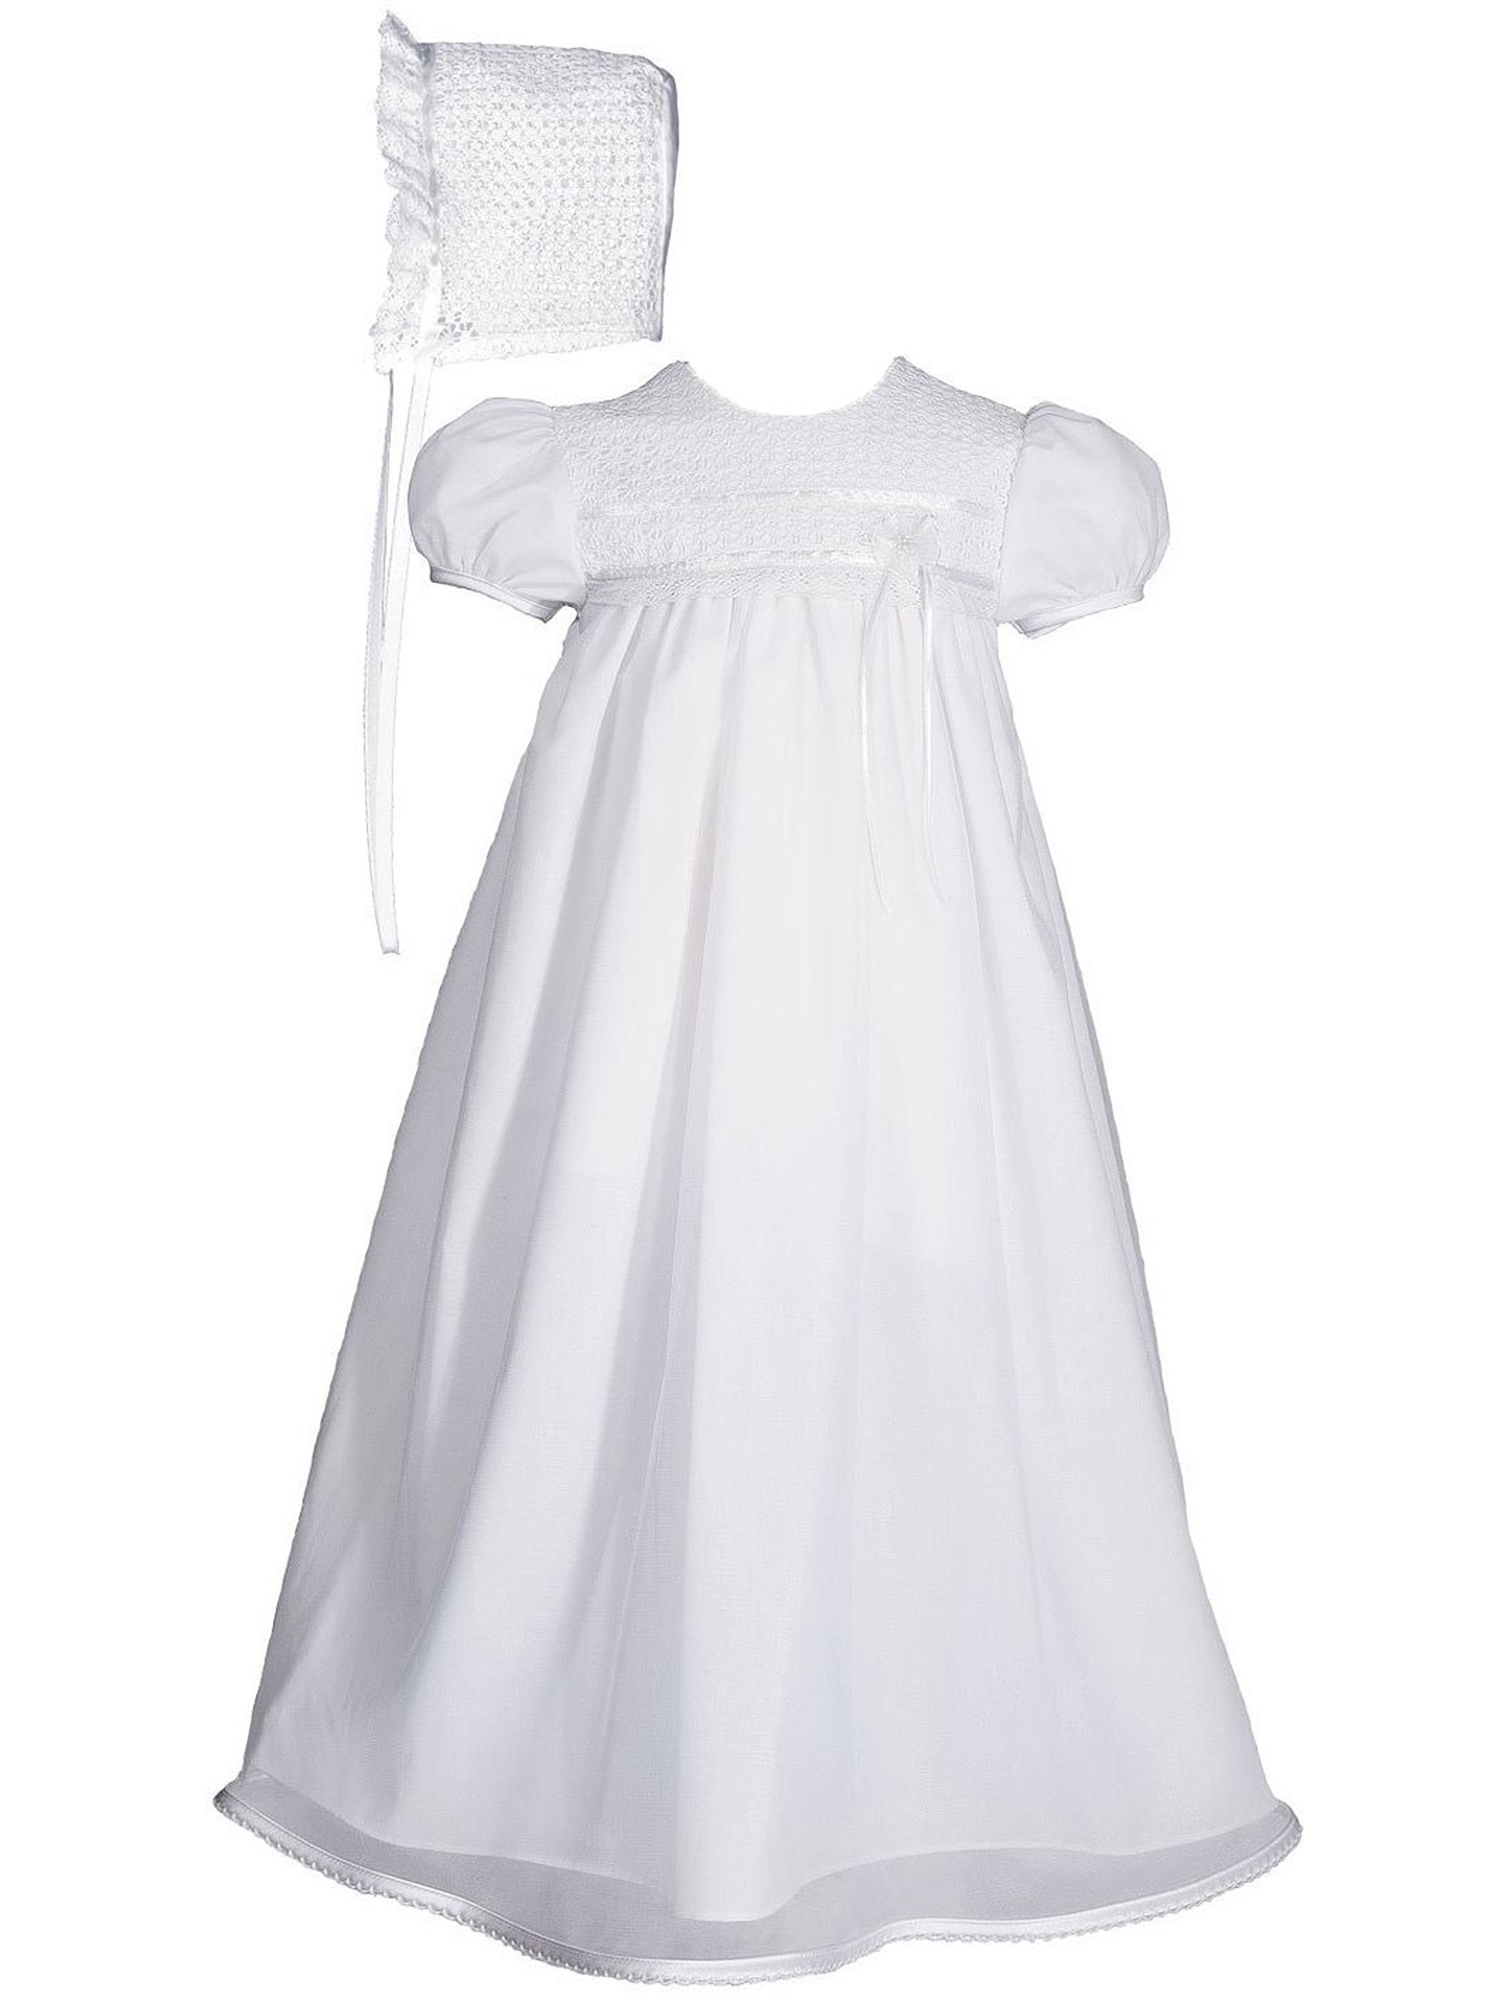 "Girls 25"" Cotton Broadcloth Christening Gown with Tricot Overlay and Lace Bonnet"